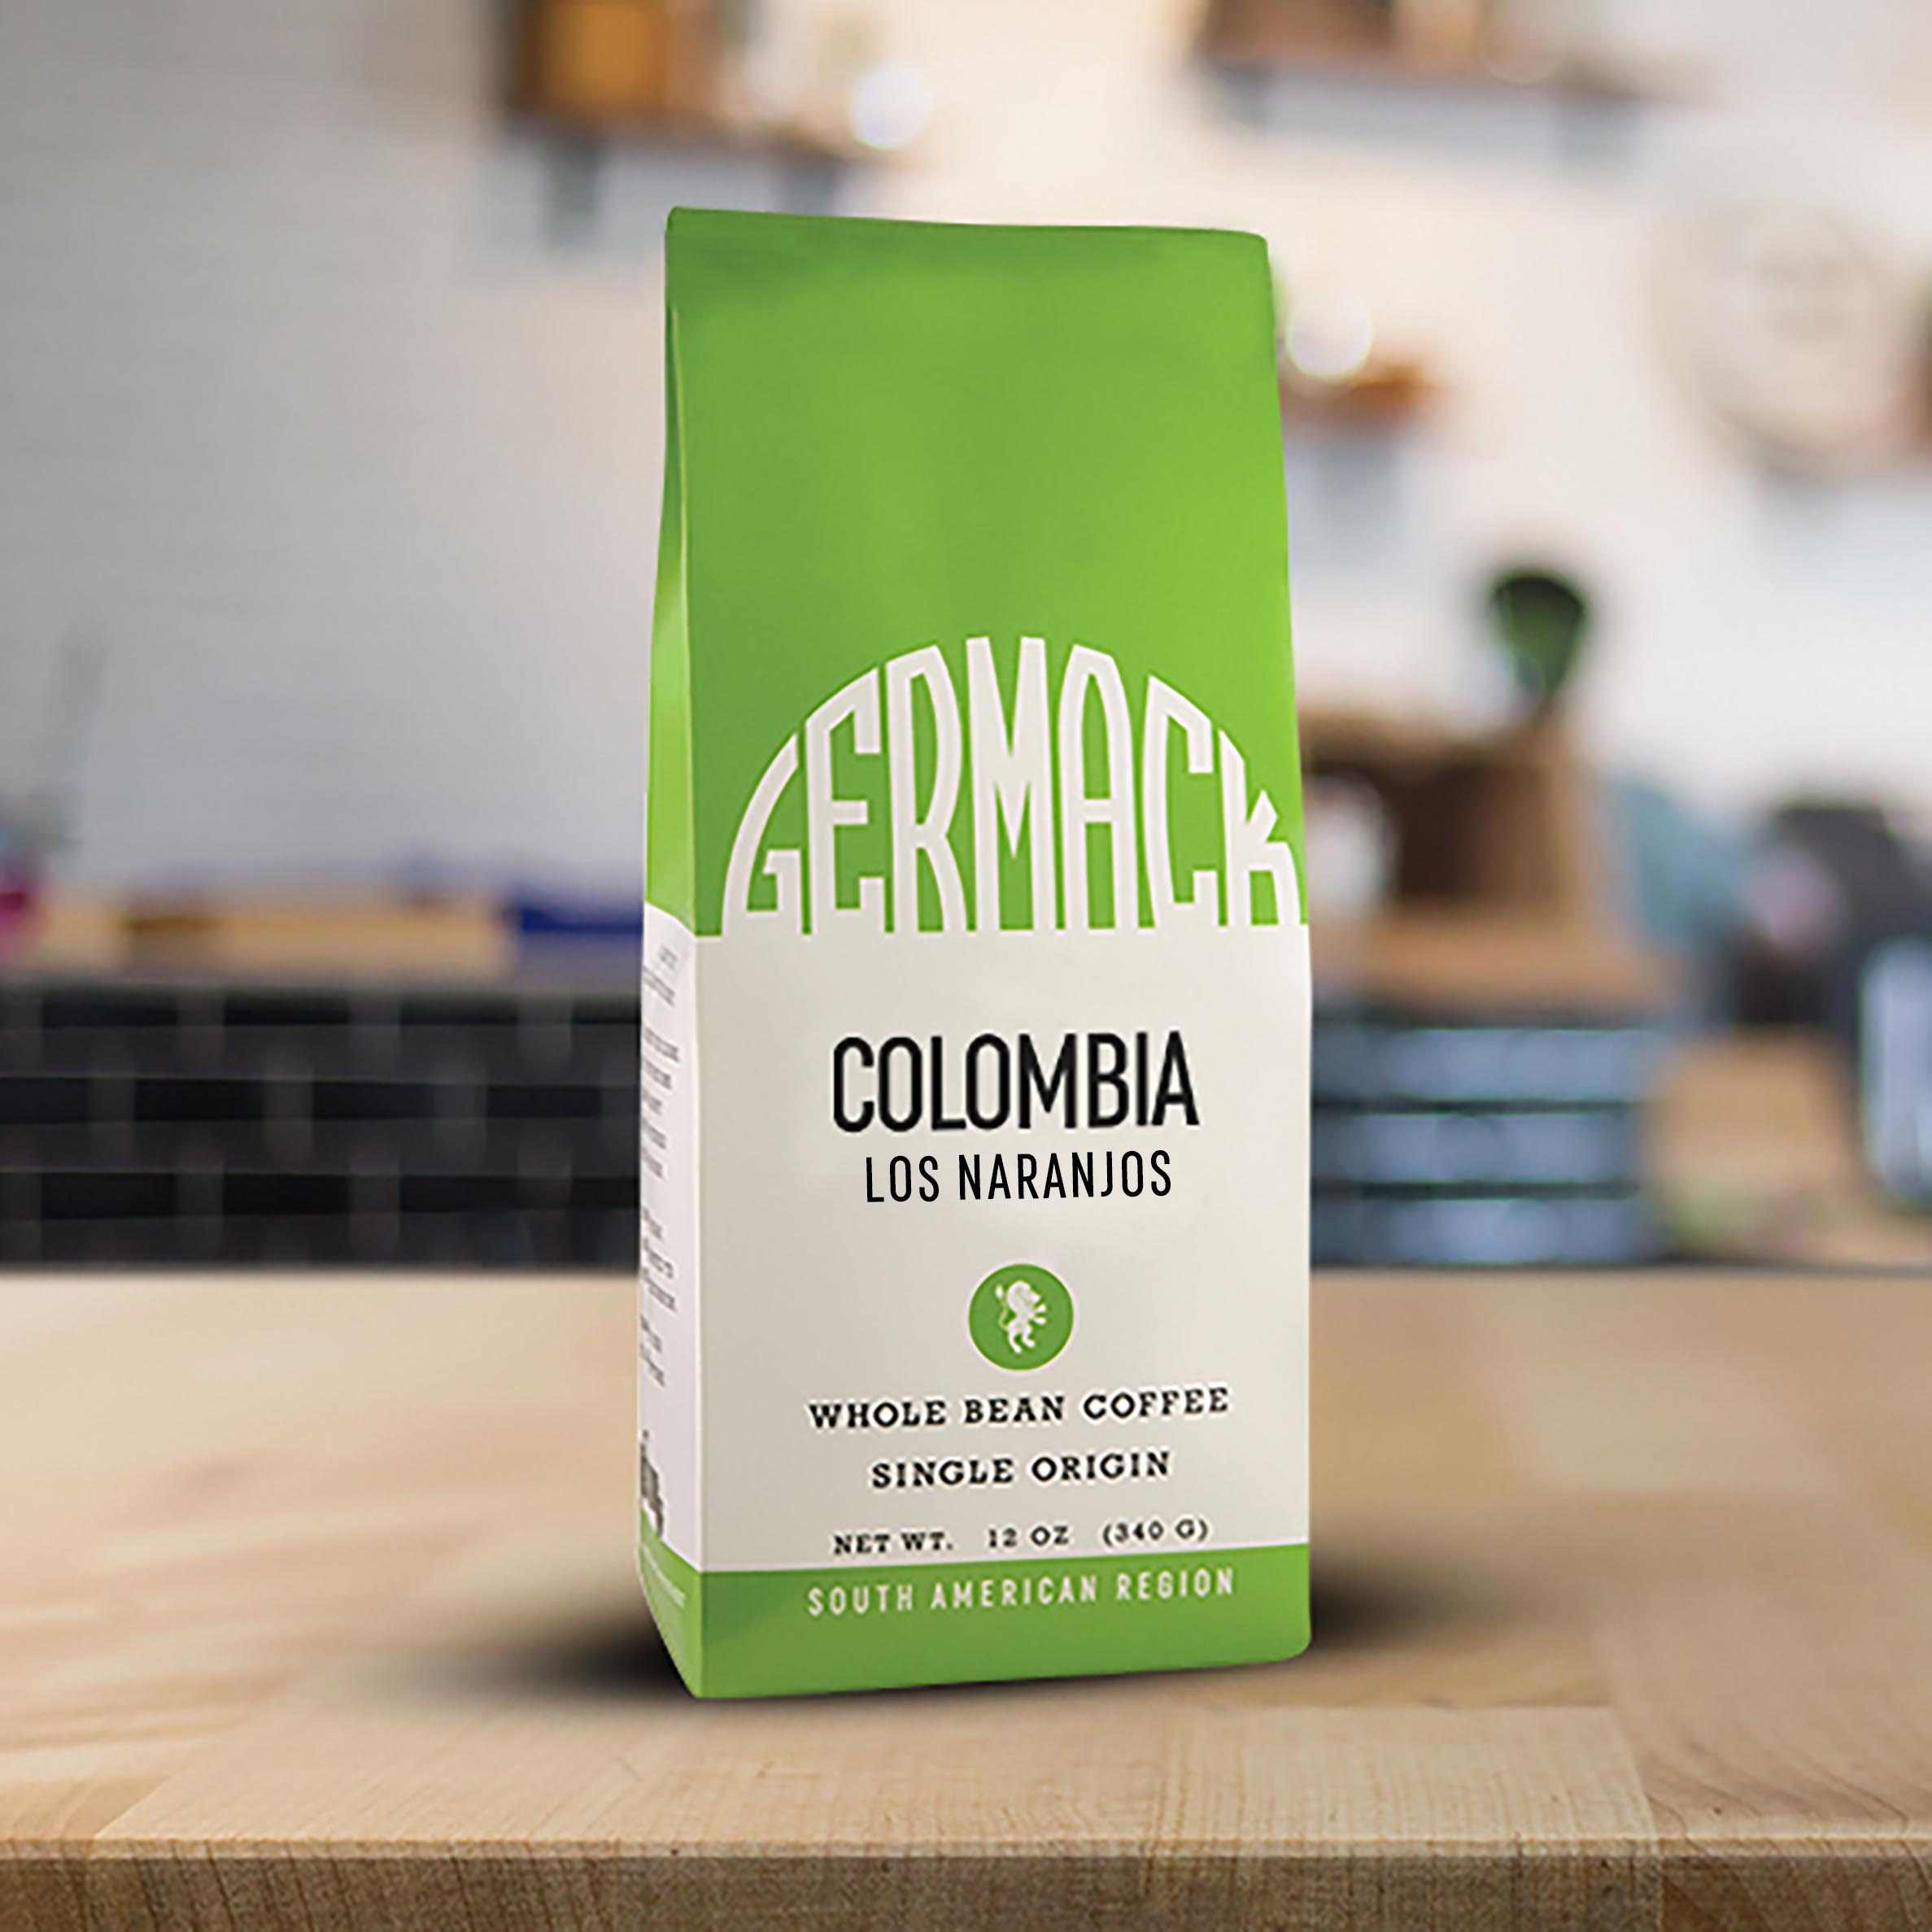 Germack Coffee Colombia Los Naranjos - 12 oz